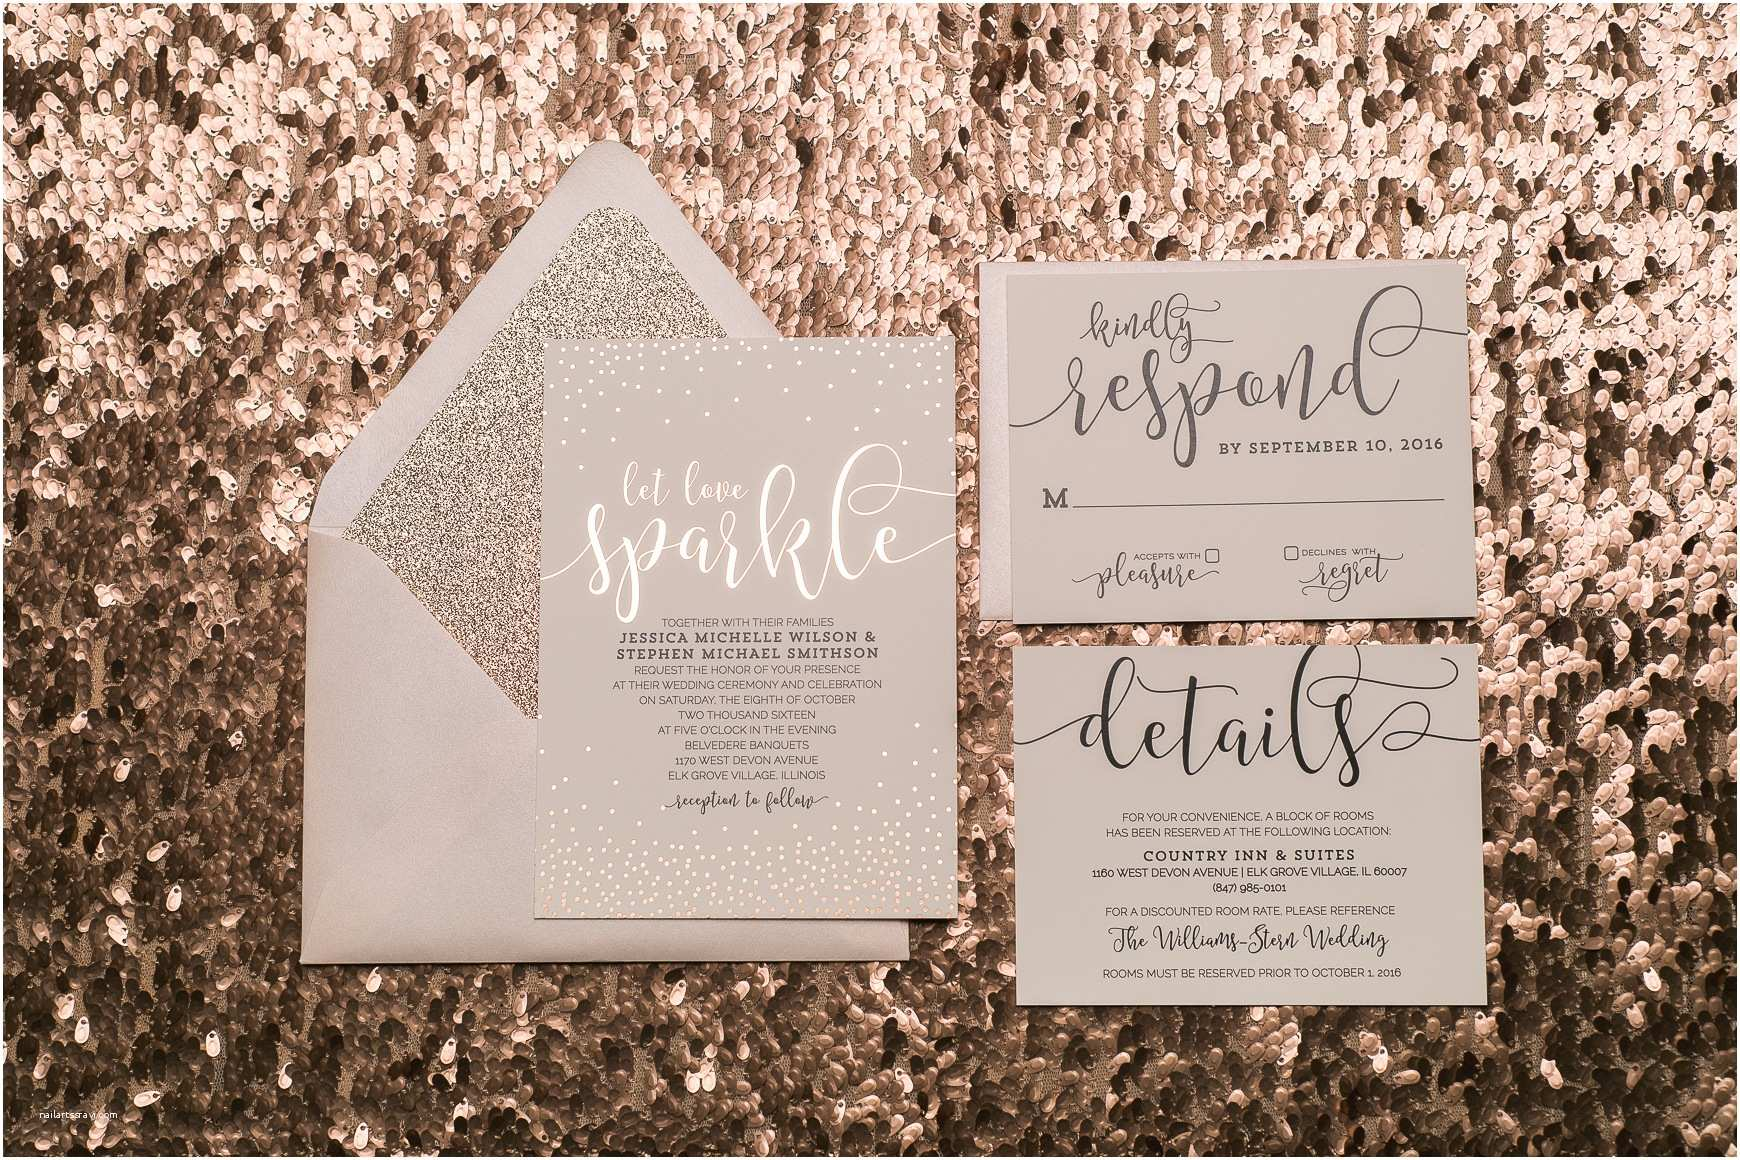 Gold Sparkle Wedding Invitations Blush and Rose Gold Glitter Wedding Invitations with Foil